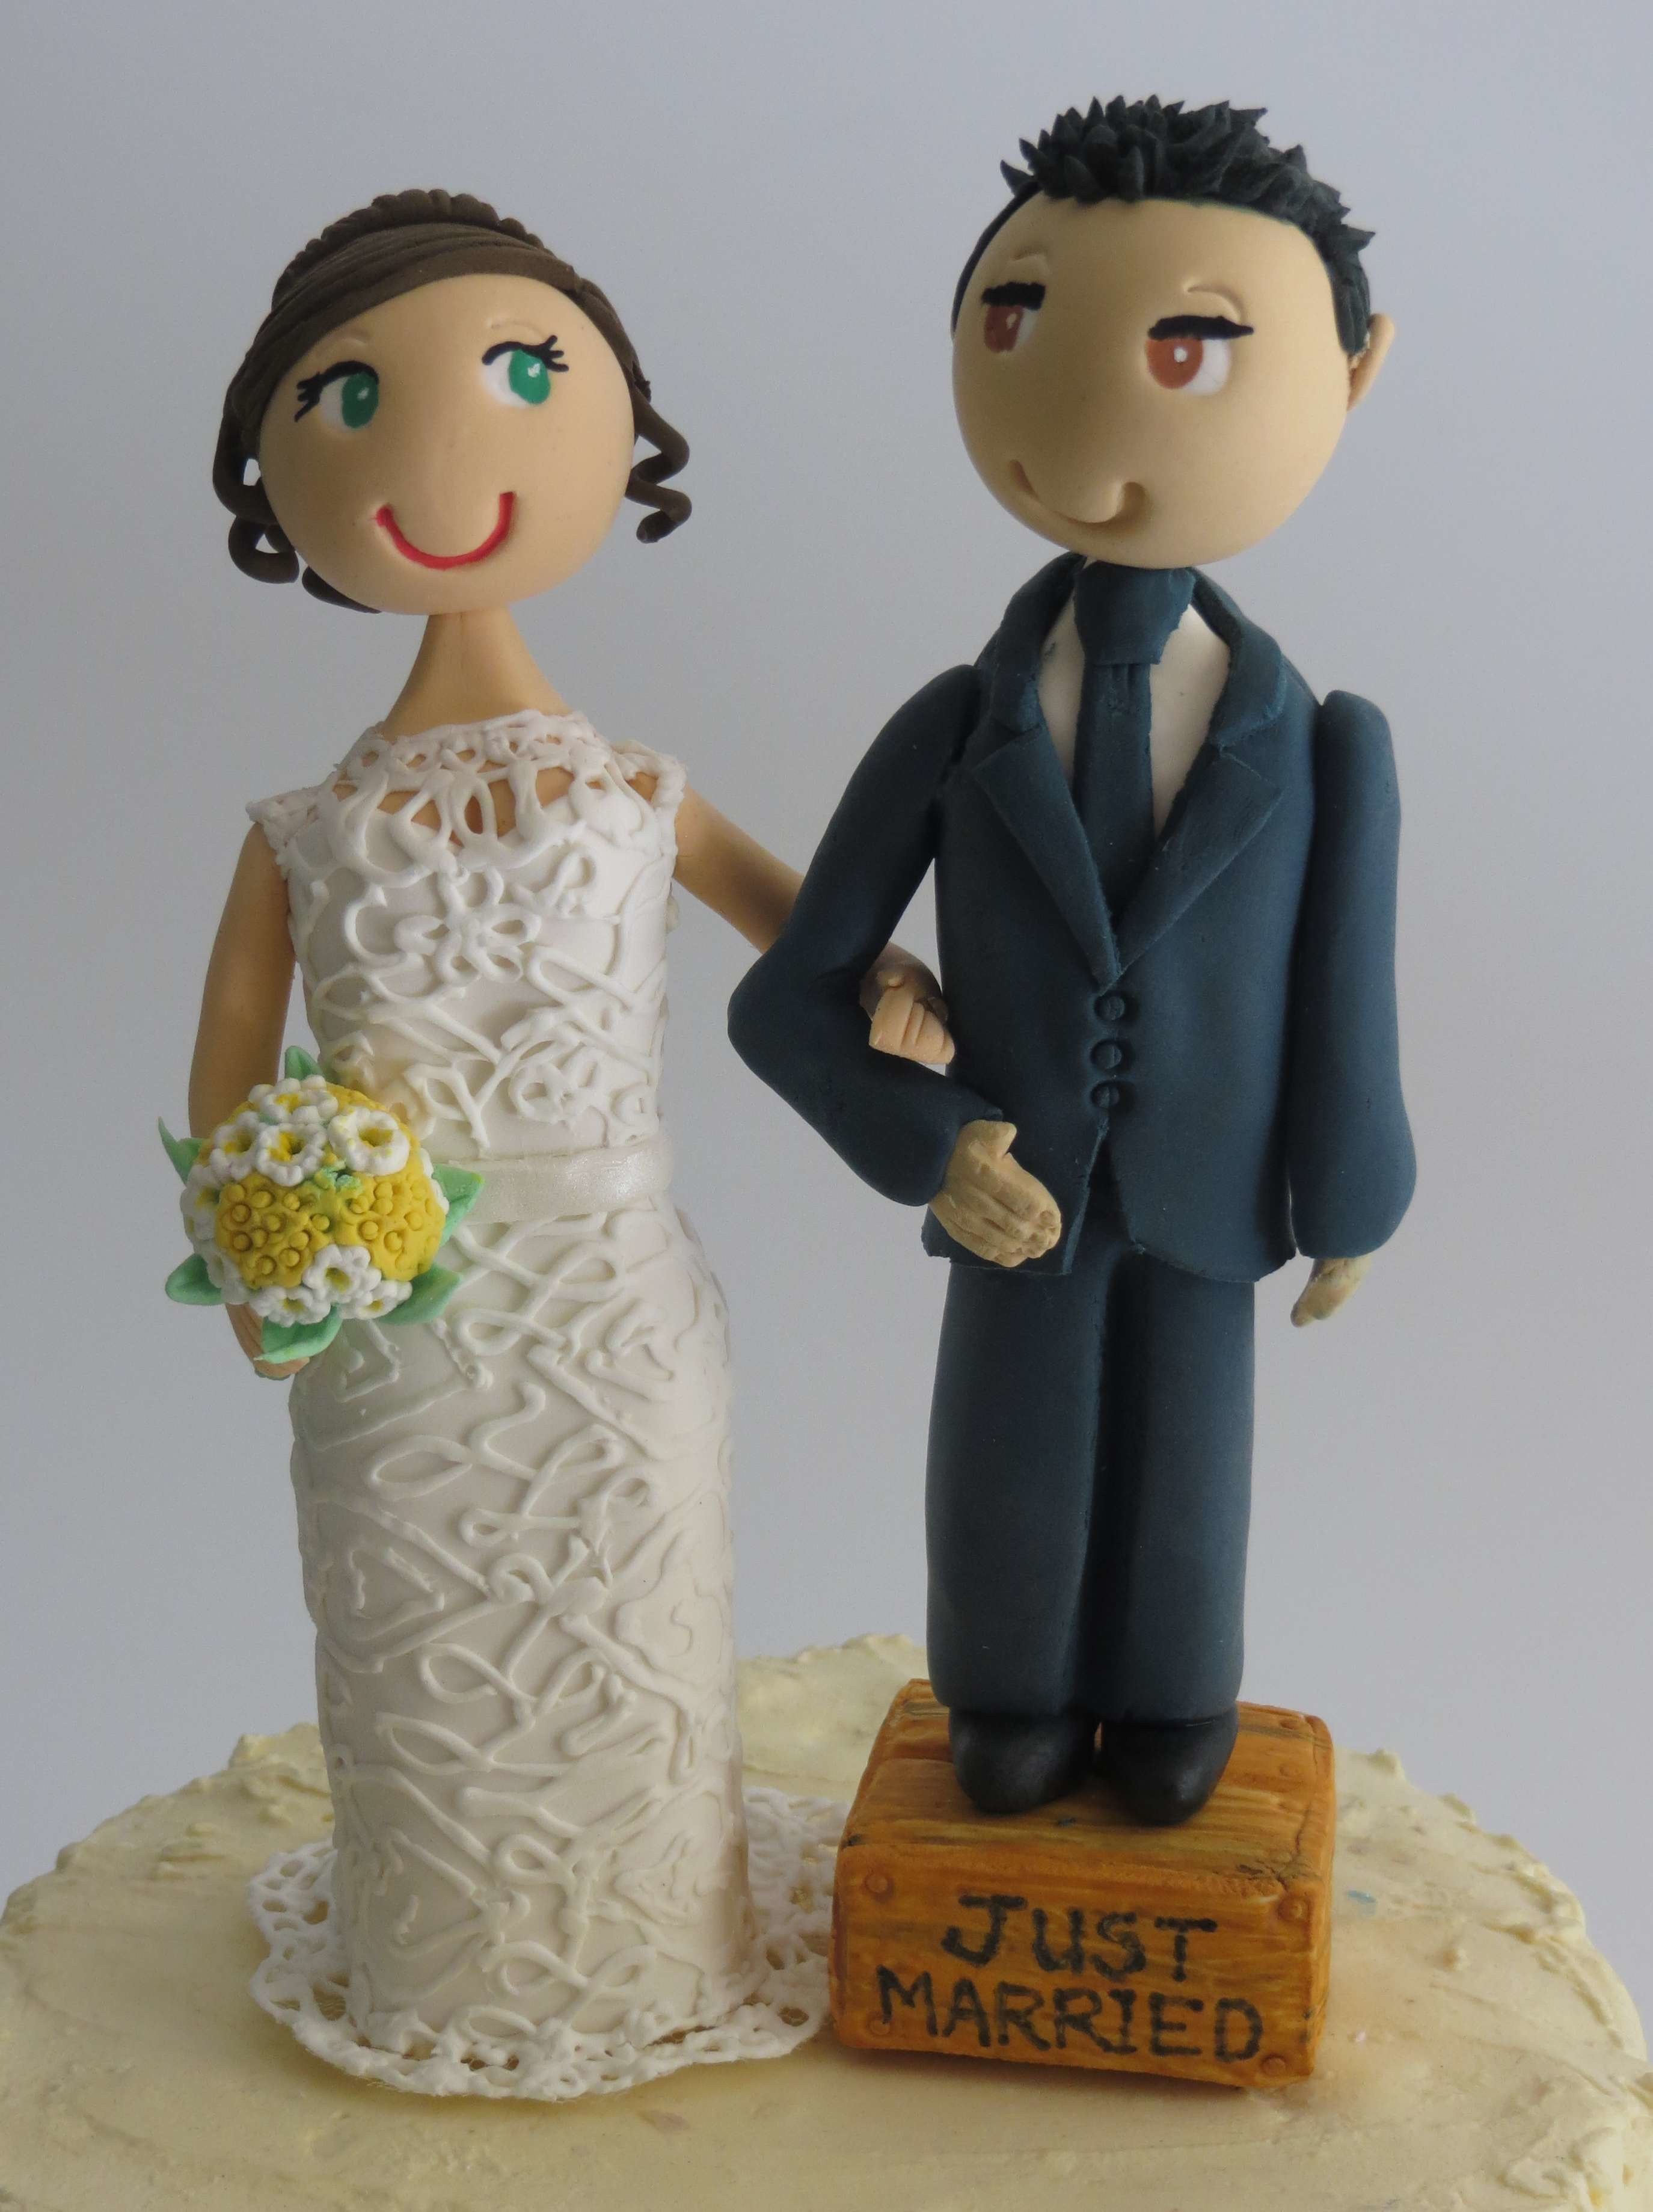 Groom standing on box Couple on round base board R